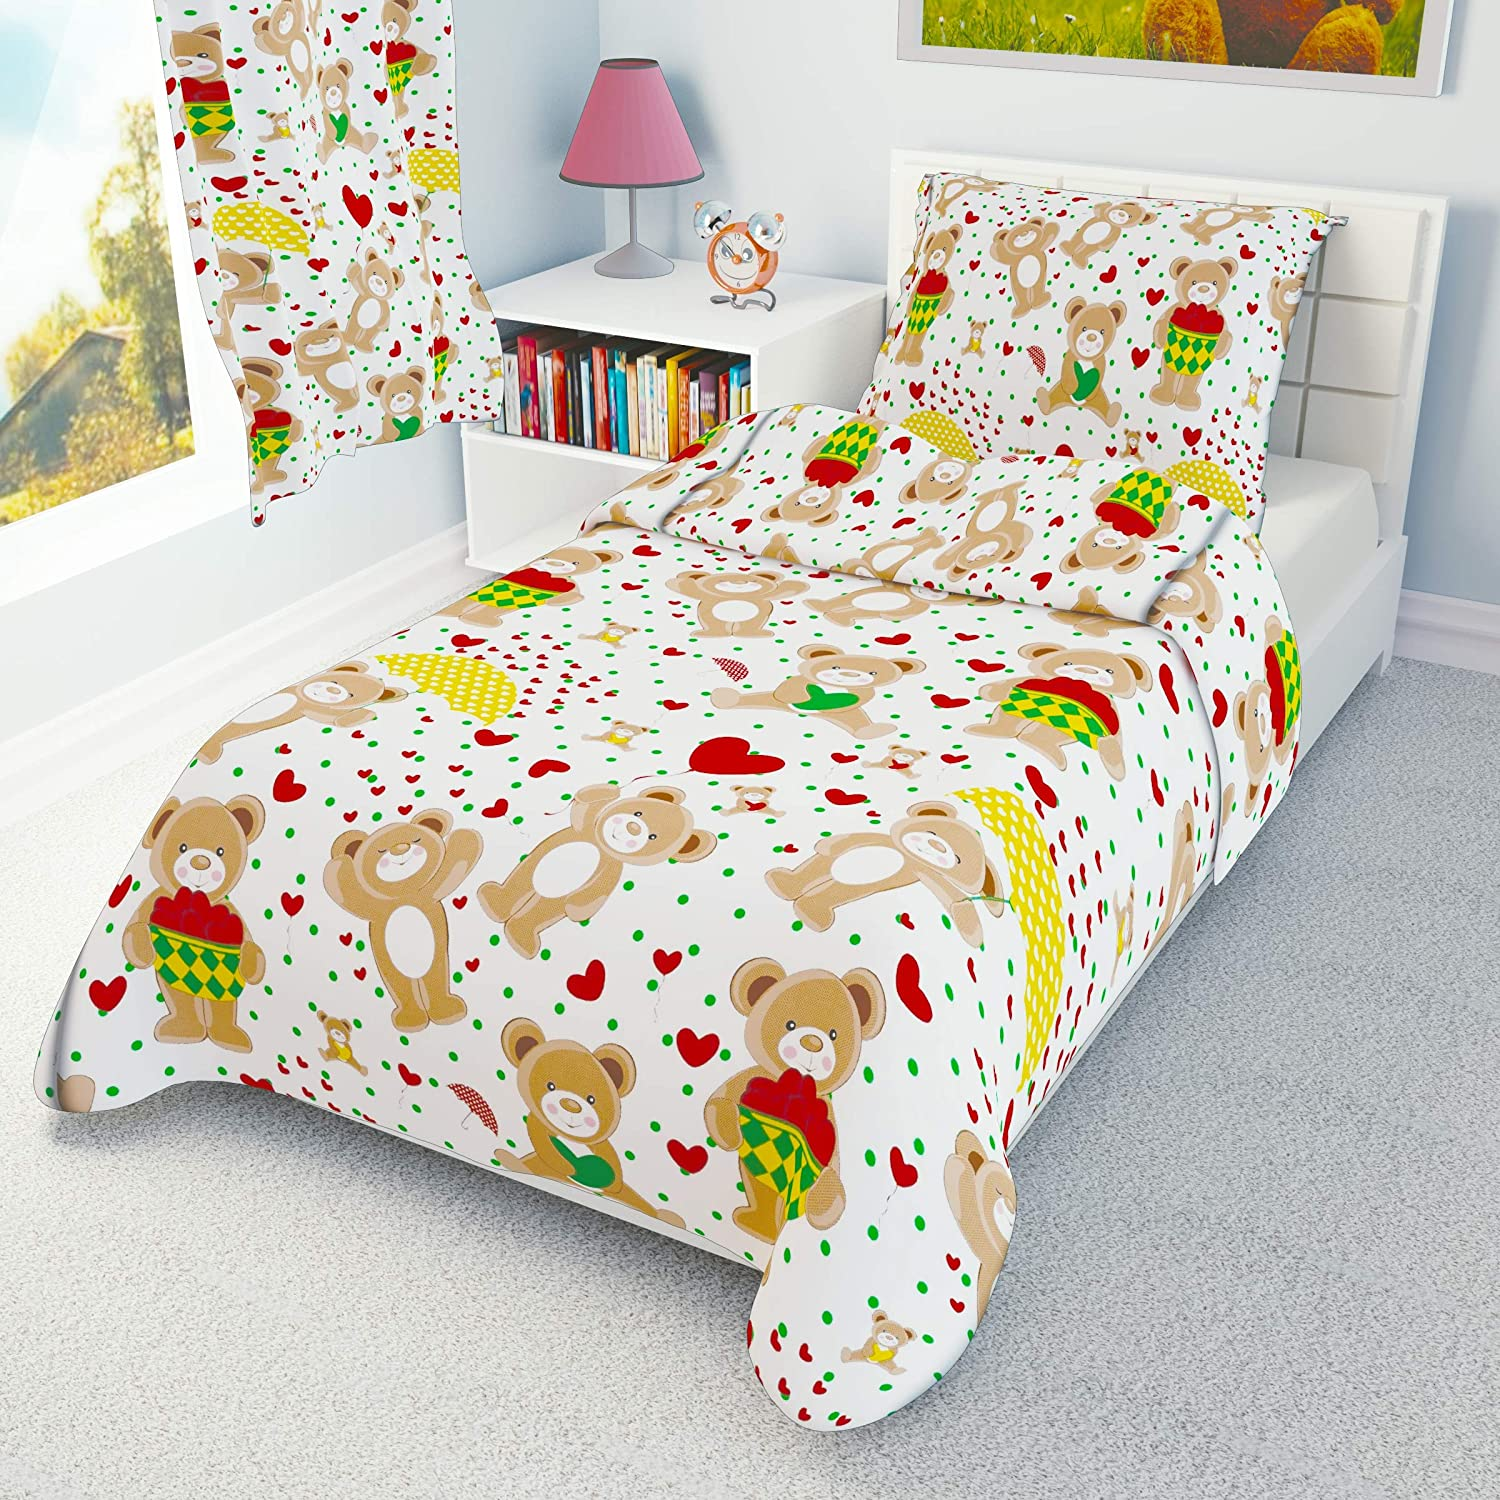 Red Love Hearts Teddies Toddler cot Bed Bedding Set Duvet Cover Pillowcase 120x150 cm 100/% Cotton